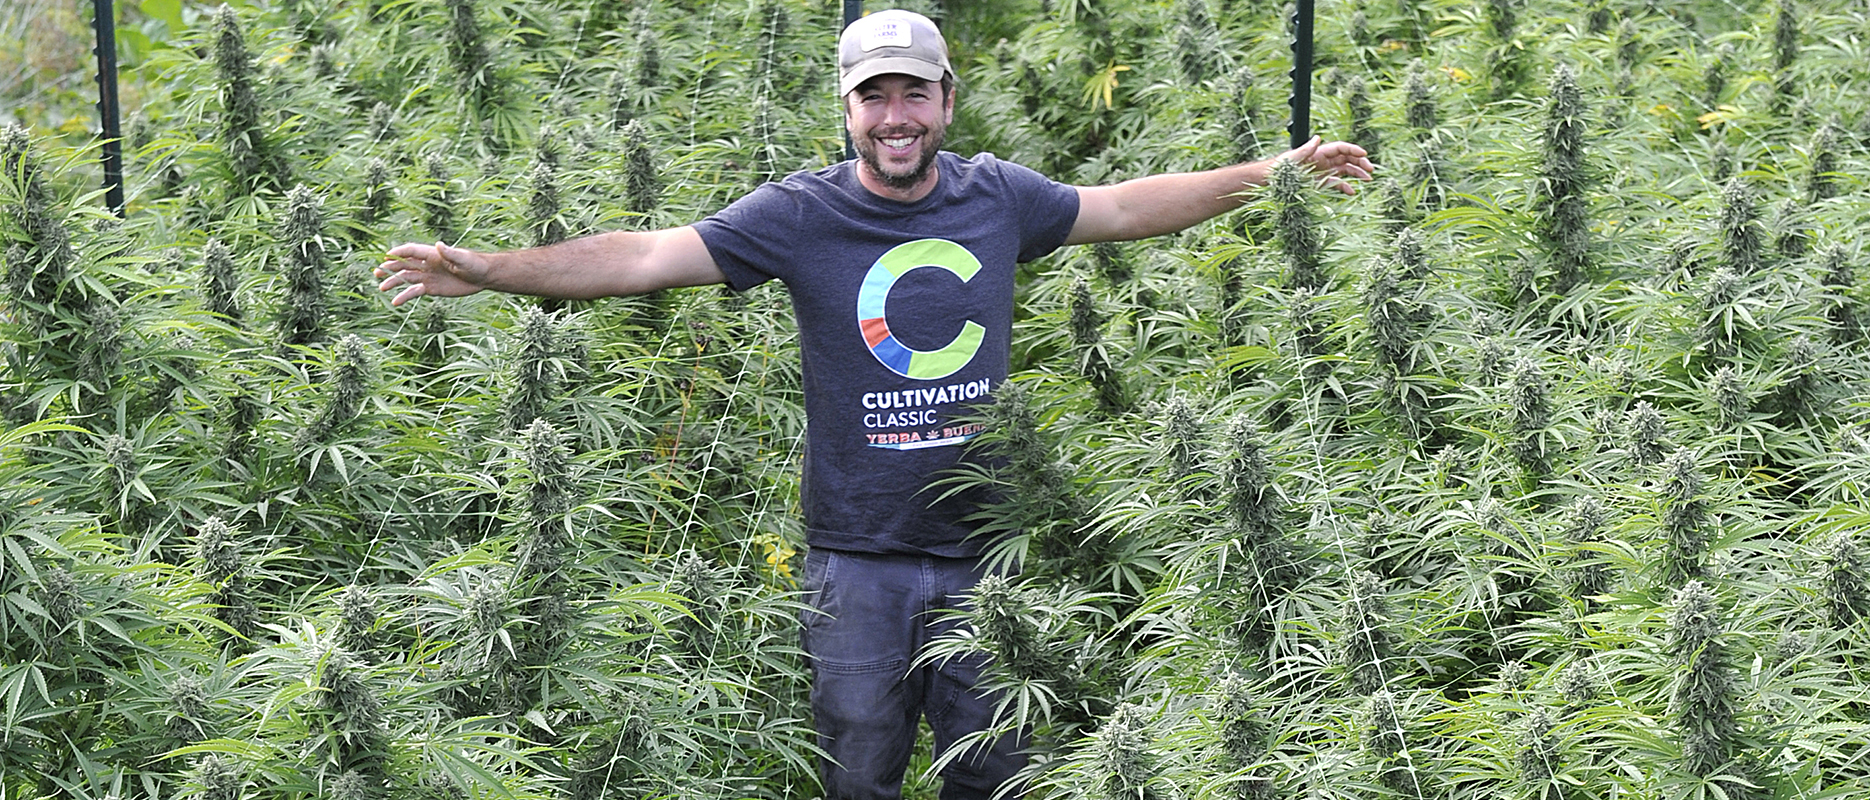 Science of growing champion bud